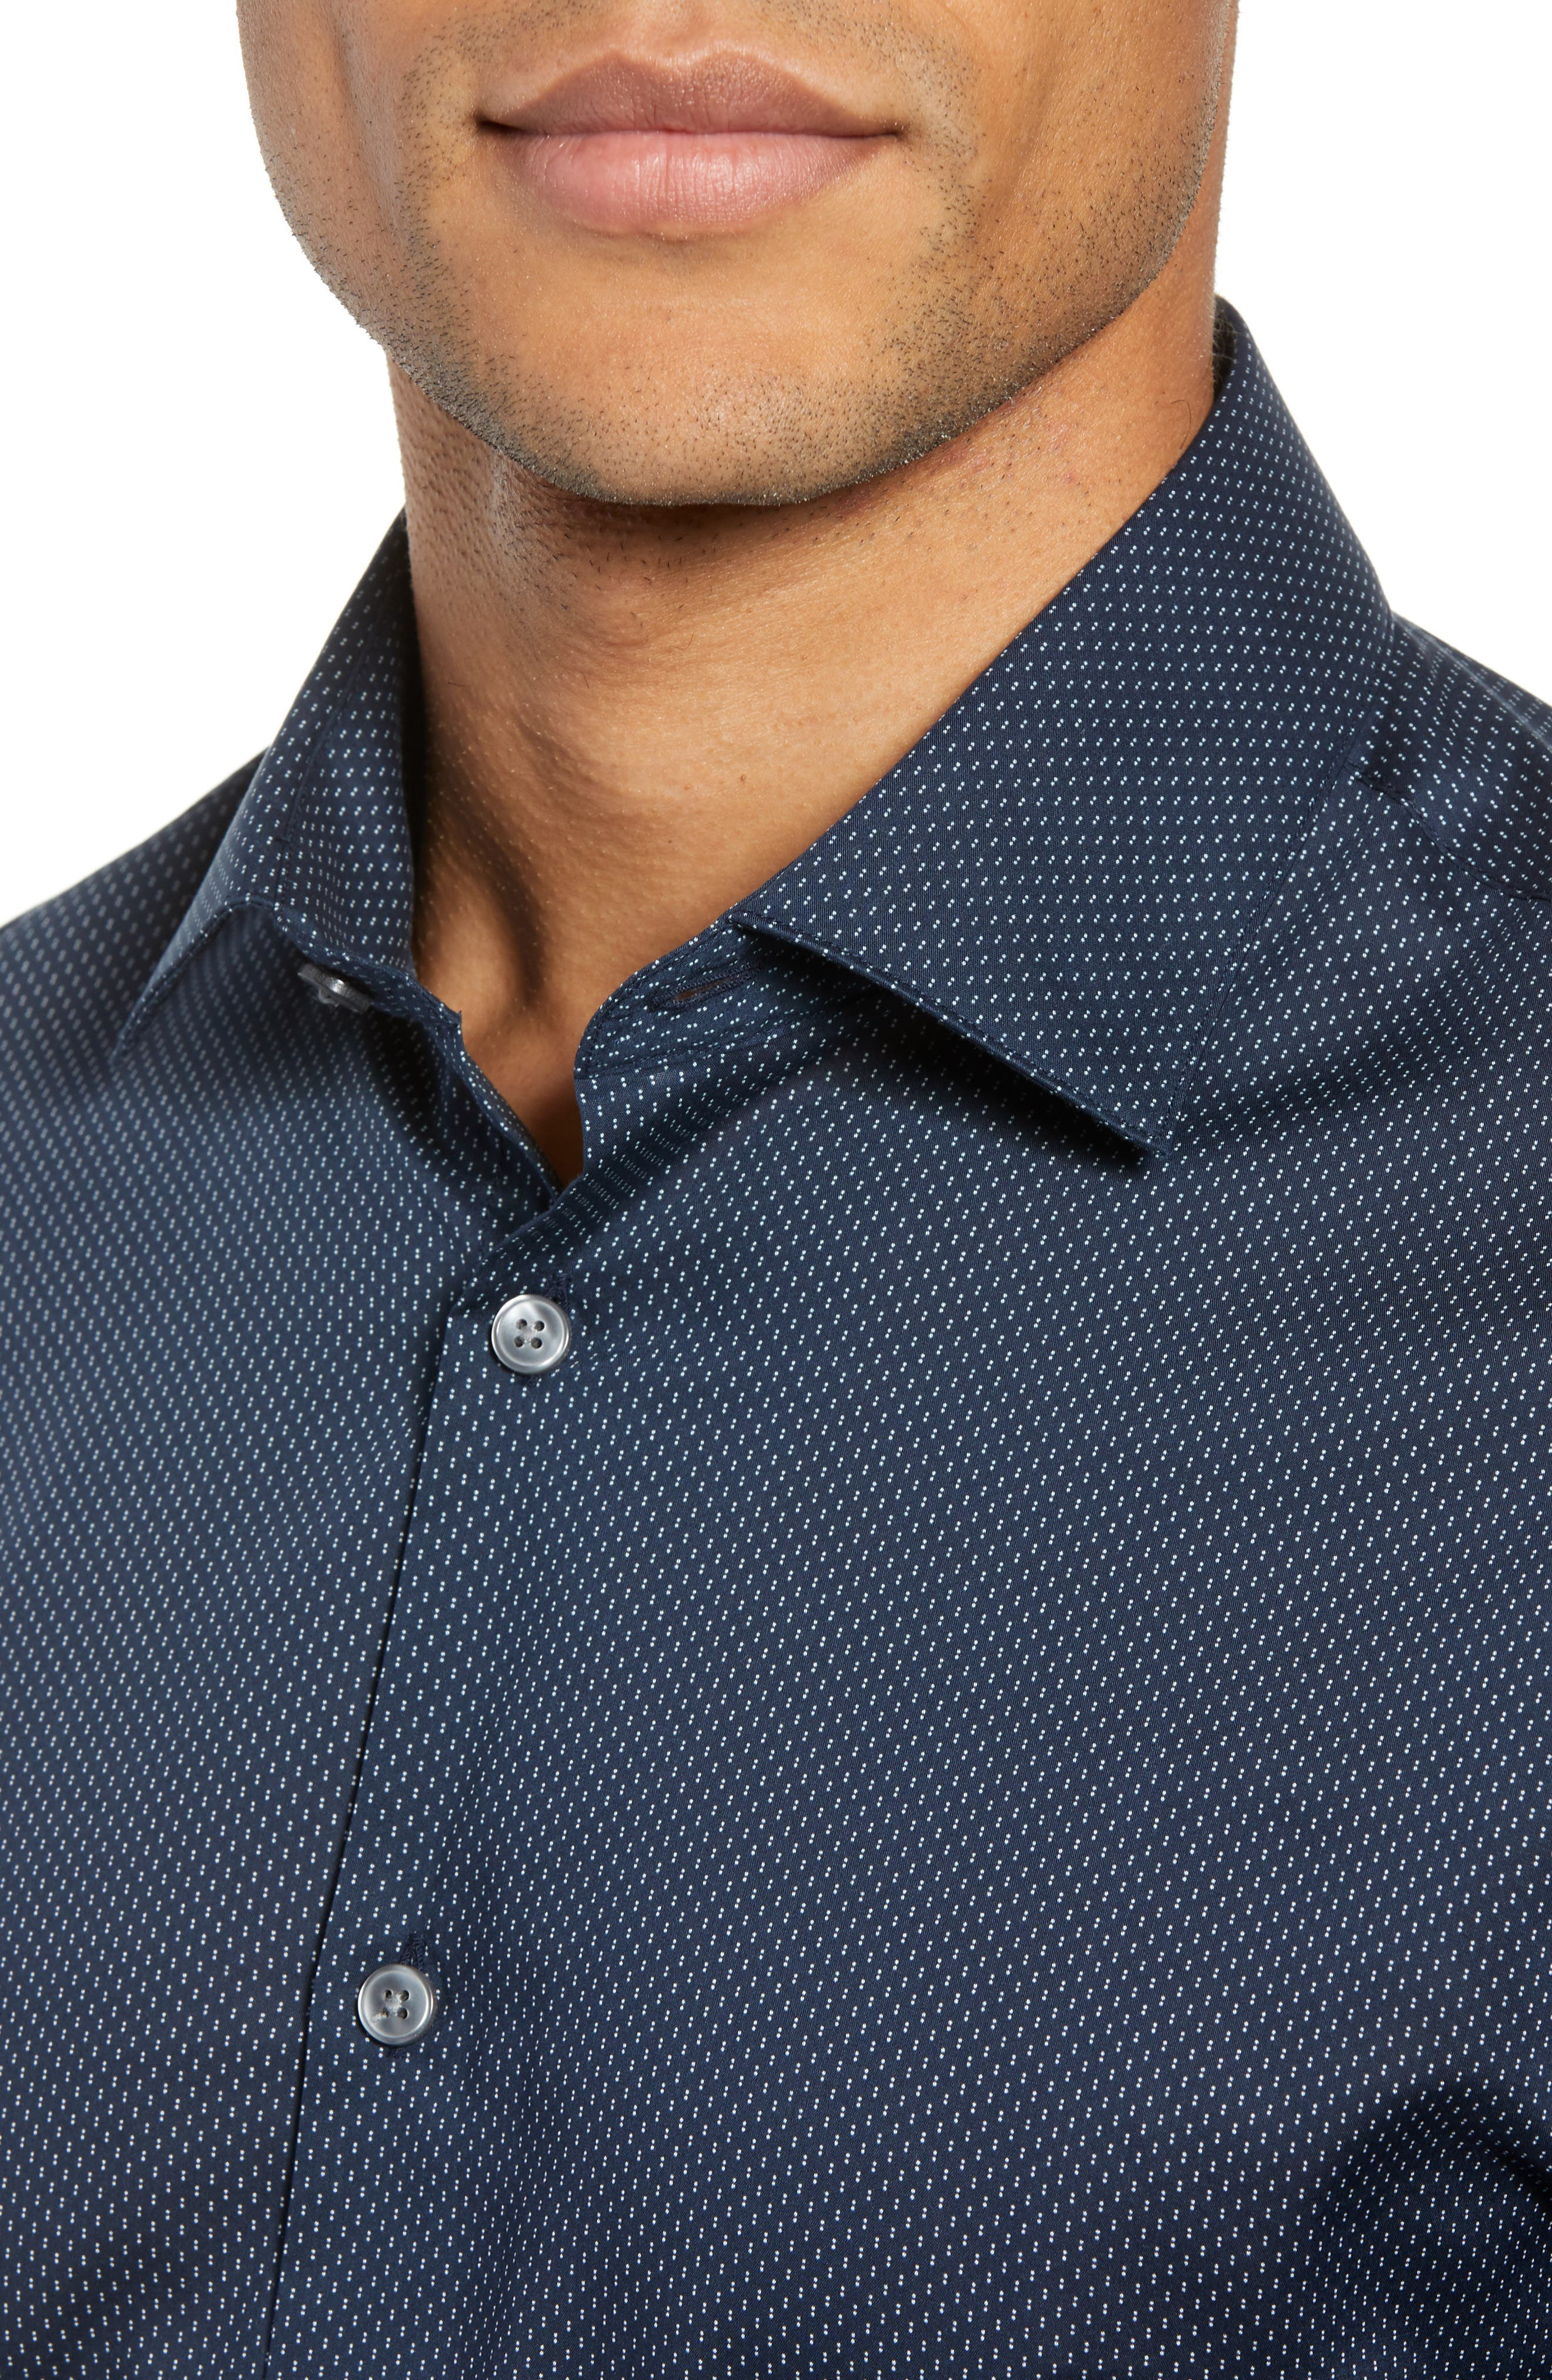 Slim Fit Dot Dress Shirt,                             Alternate thumbnail 2, color,                             INDIGO